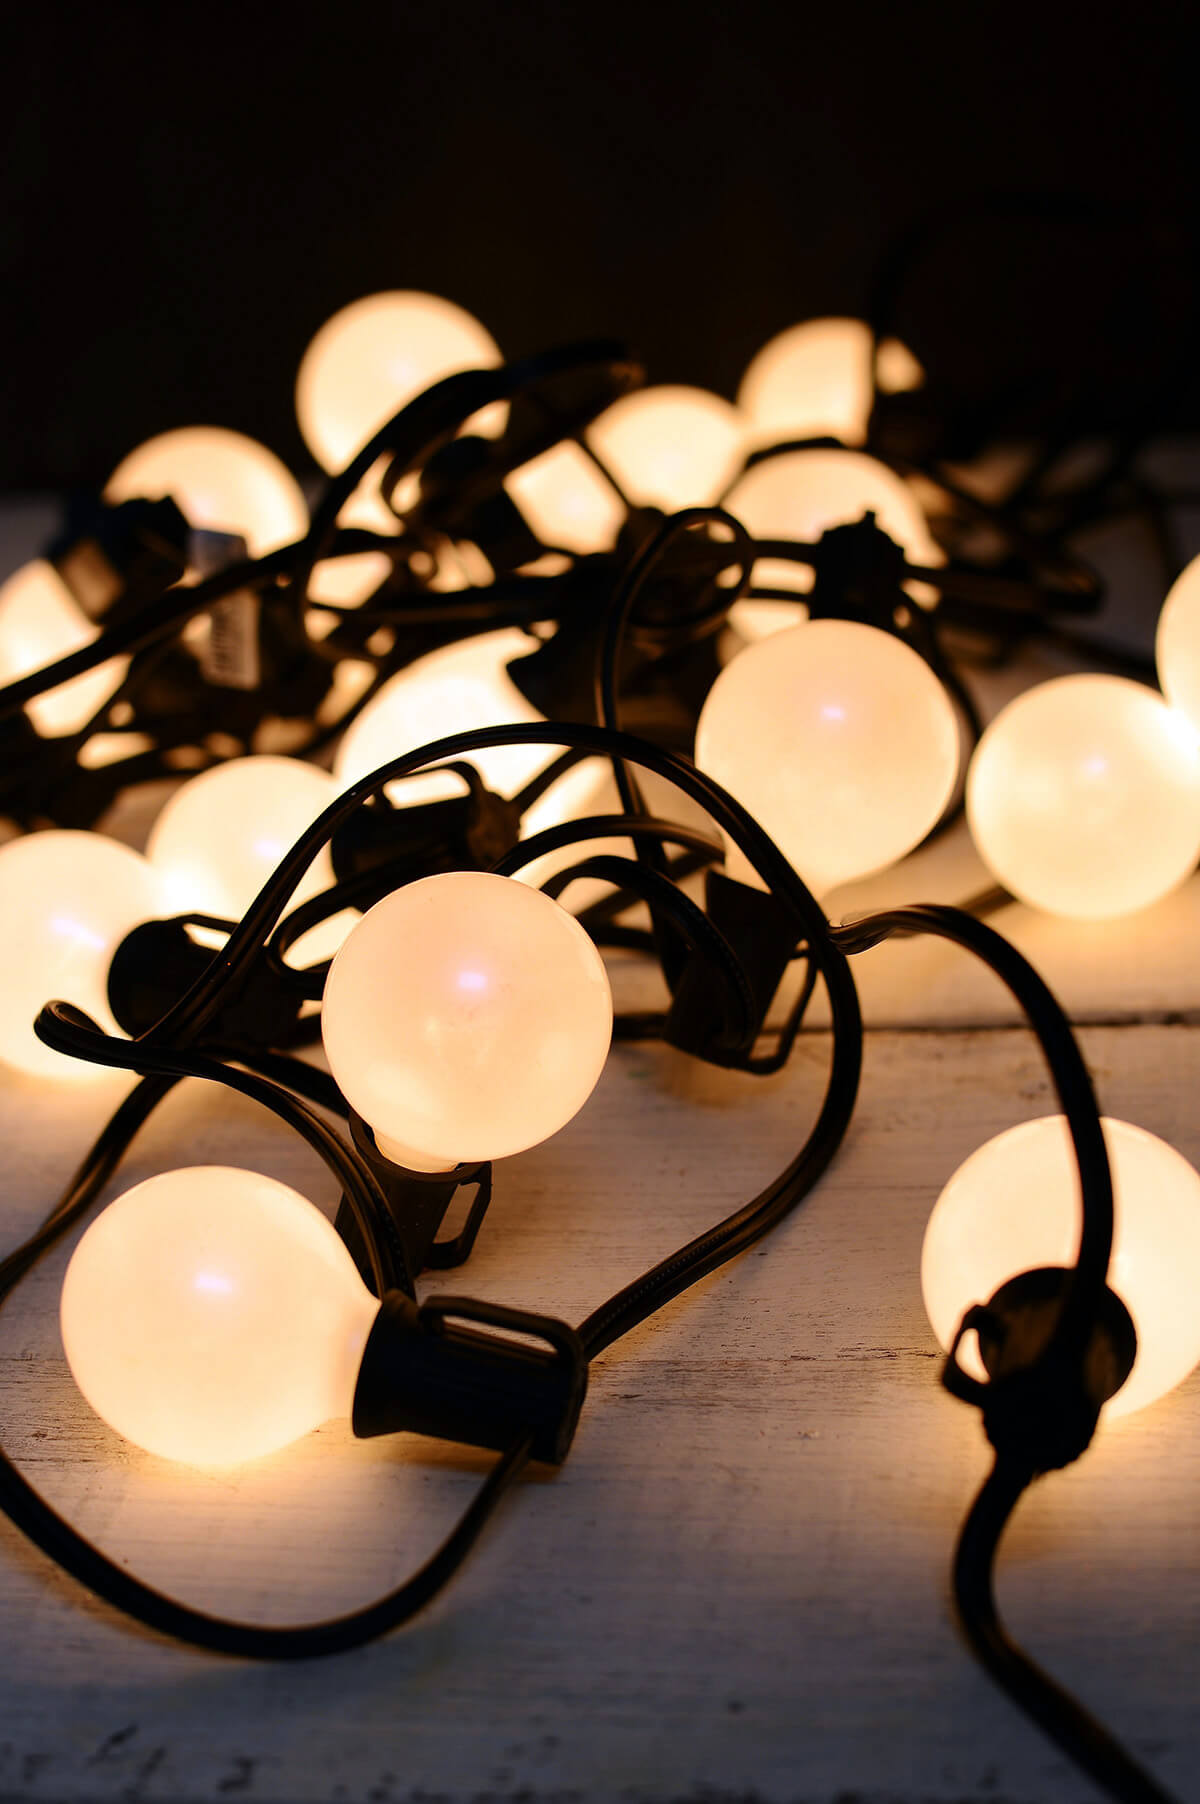 Globe String Lights Indoors : Pearl White Globe String Lights Set of 25 G40 Indoor Outdoor 24 Feet